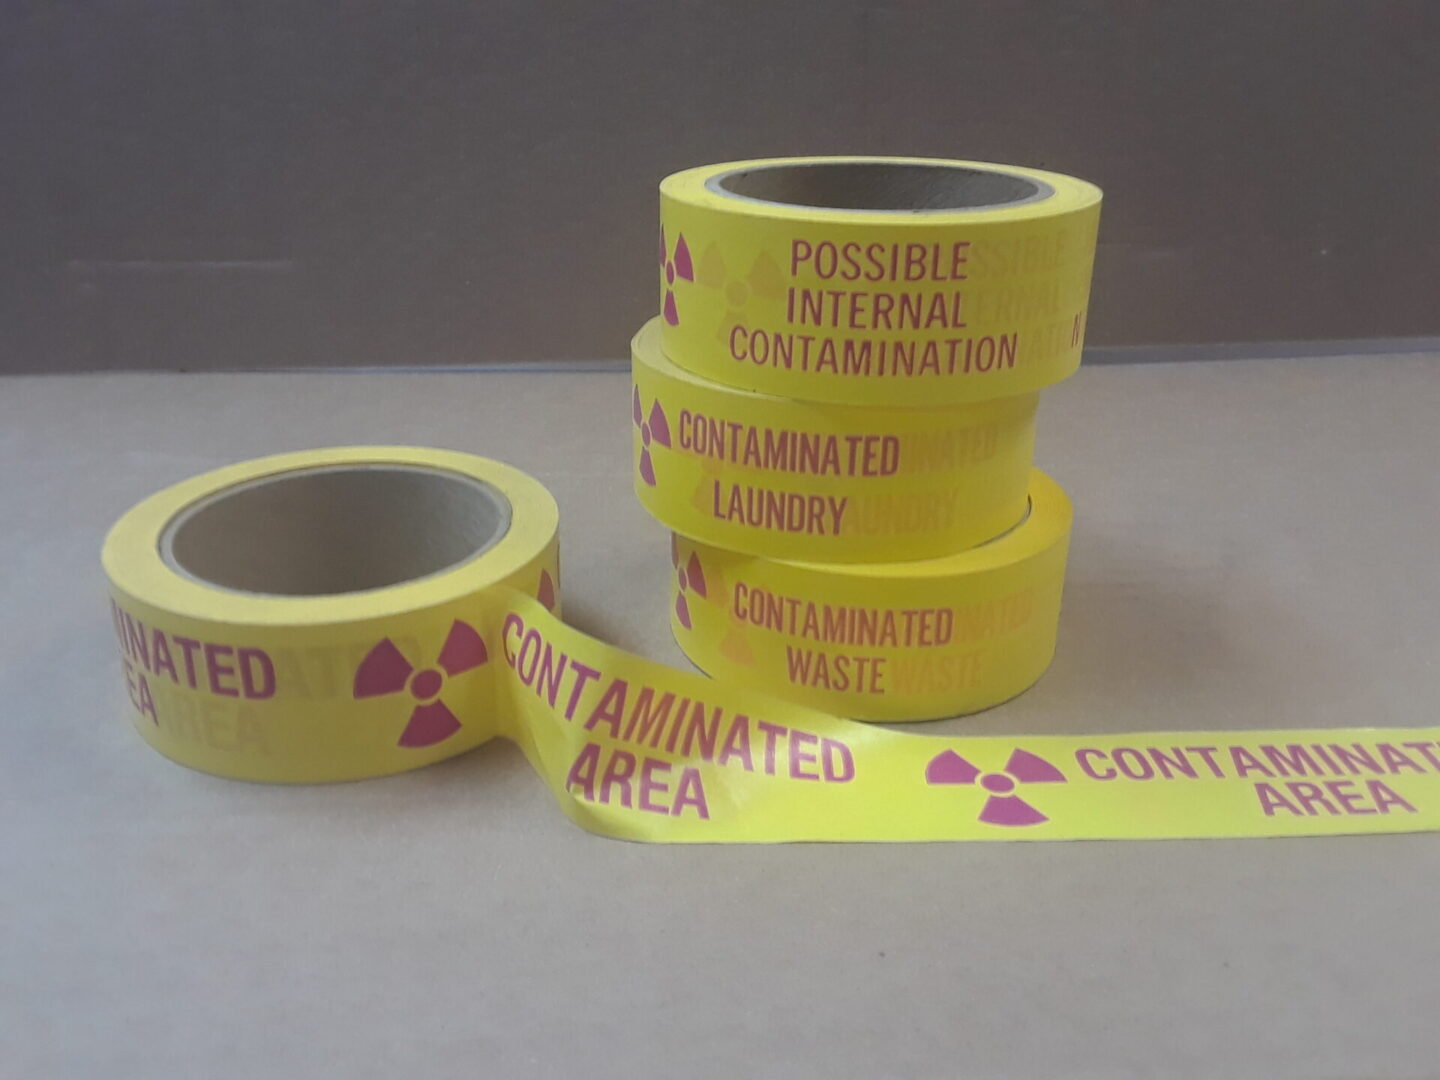 Tape line with contaminated area label